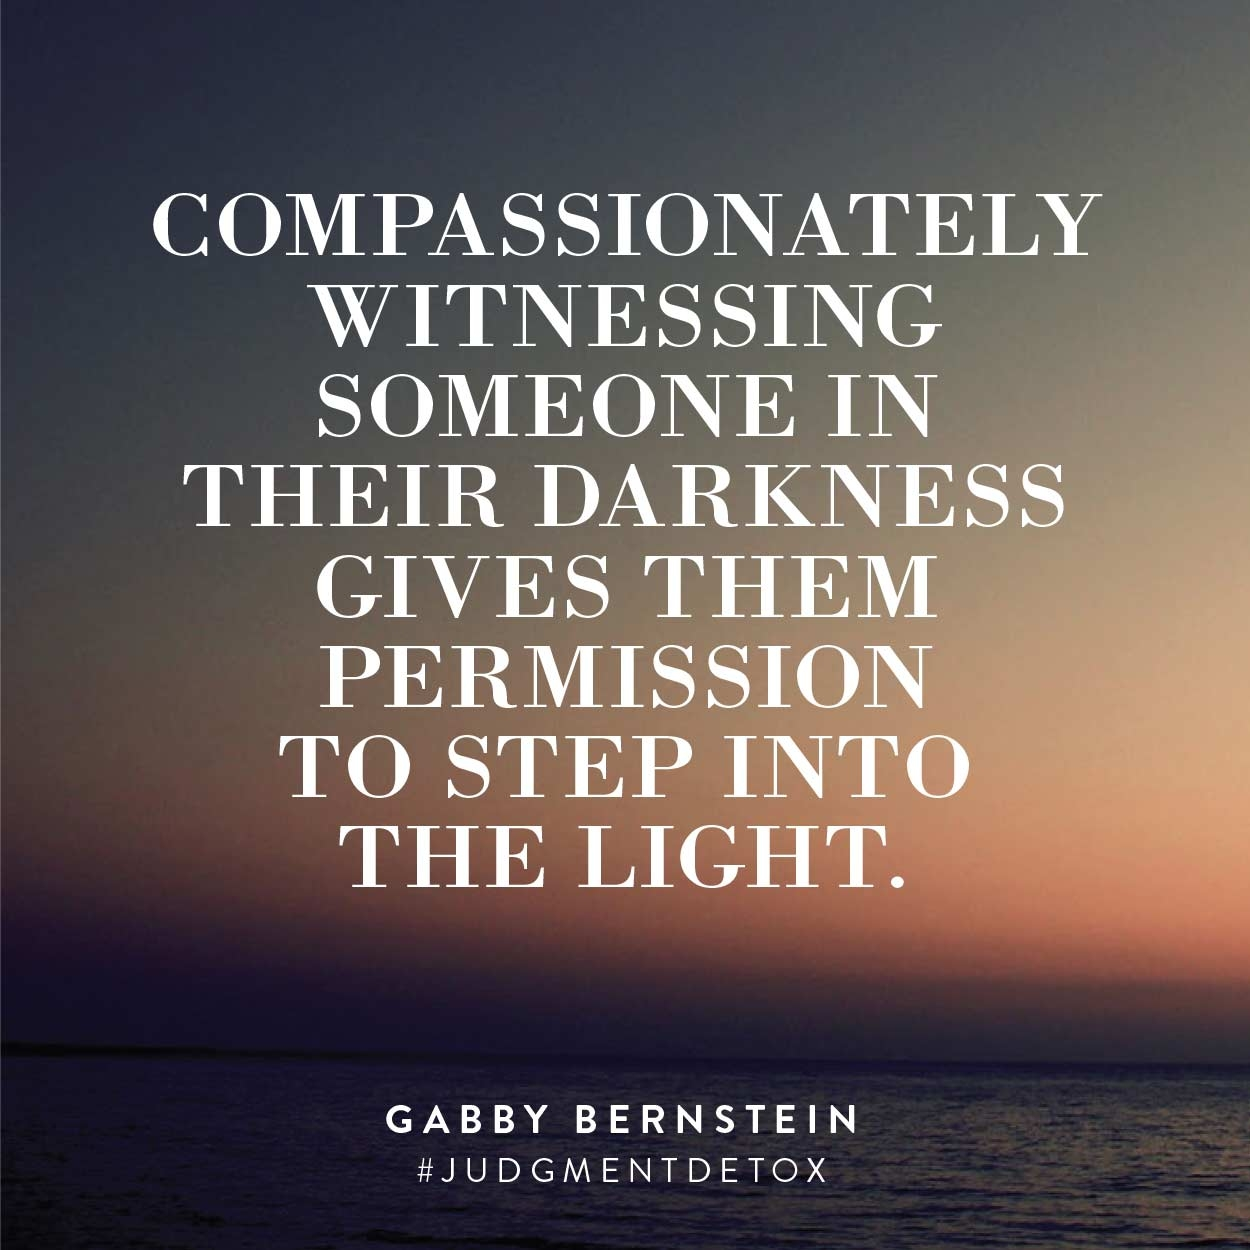 Compassionately witnessing someone in their darkness gives them permission to step into the light. | Judgment Detox by Gabby Bernstein